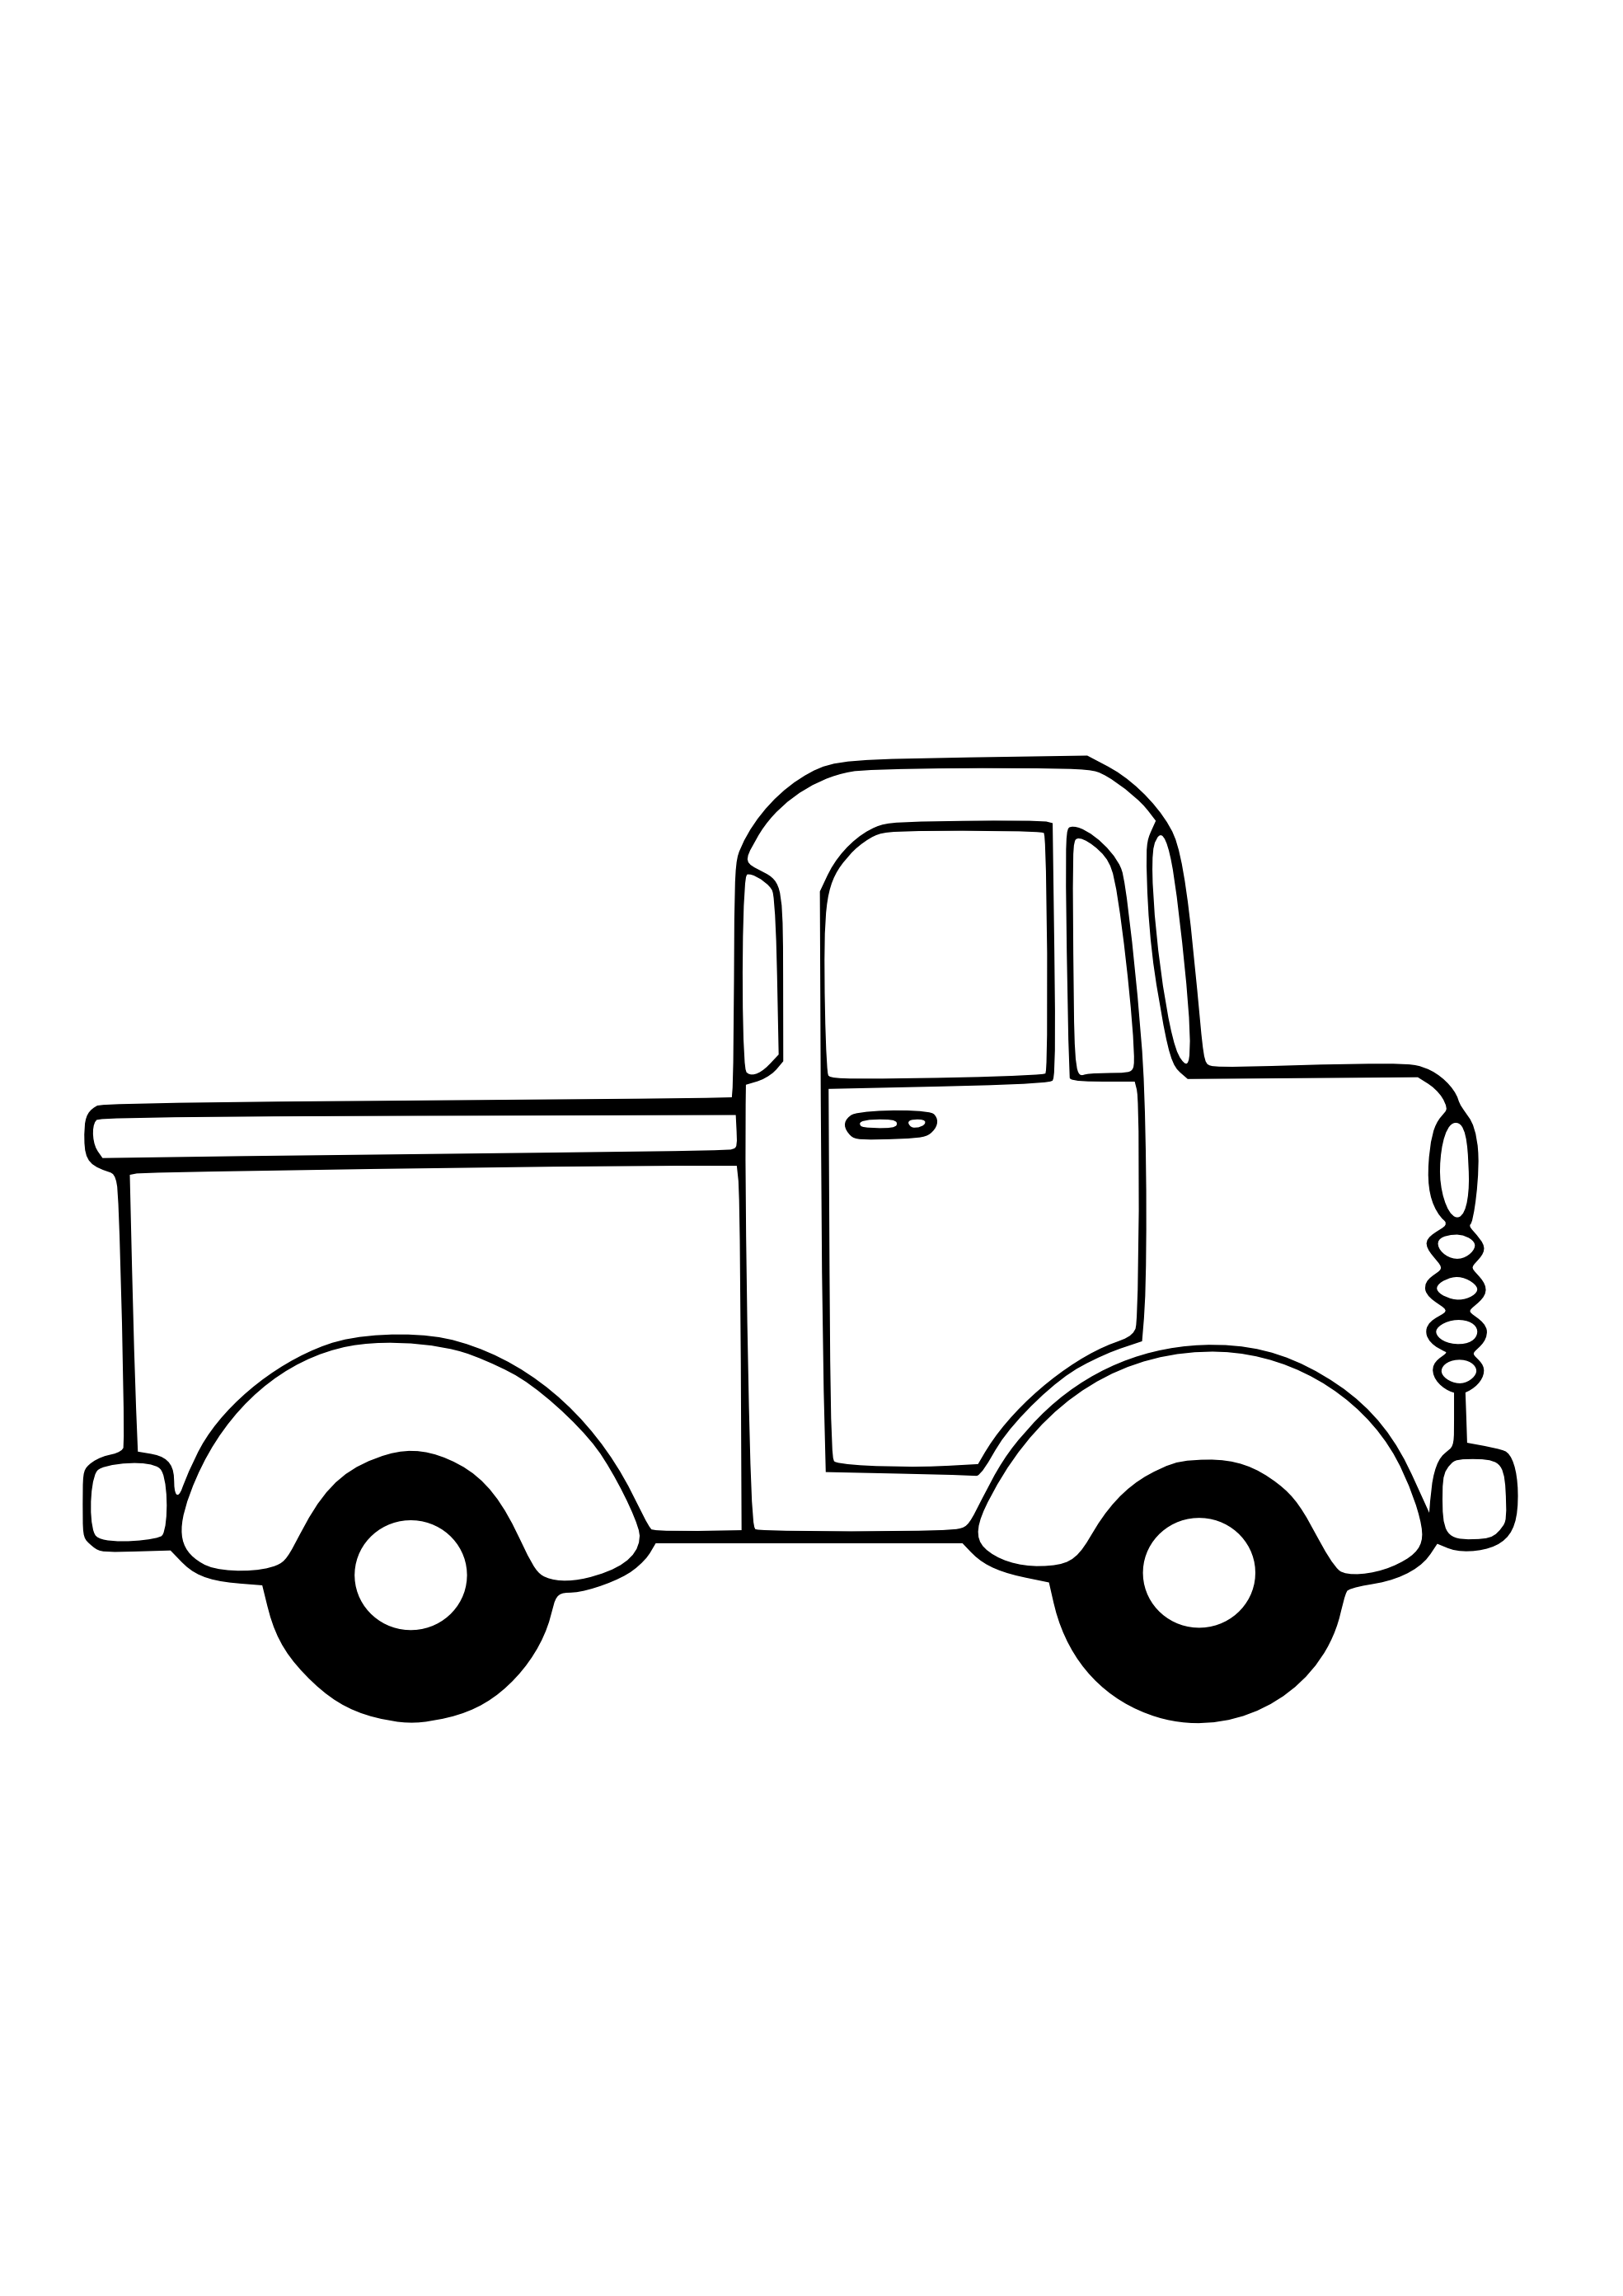 Free Christmas Truck Cliparts, Download Free Clip Art, Free ... image transparent library